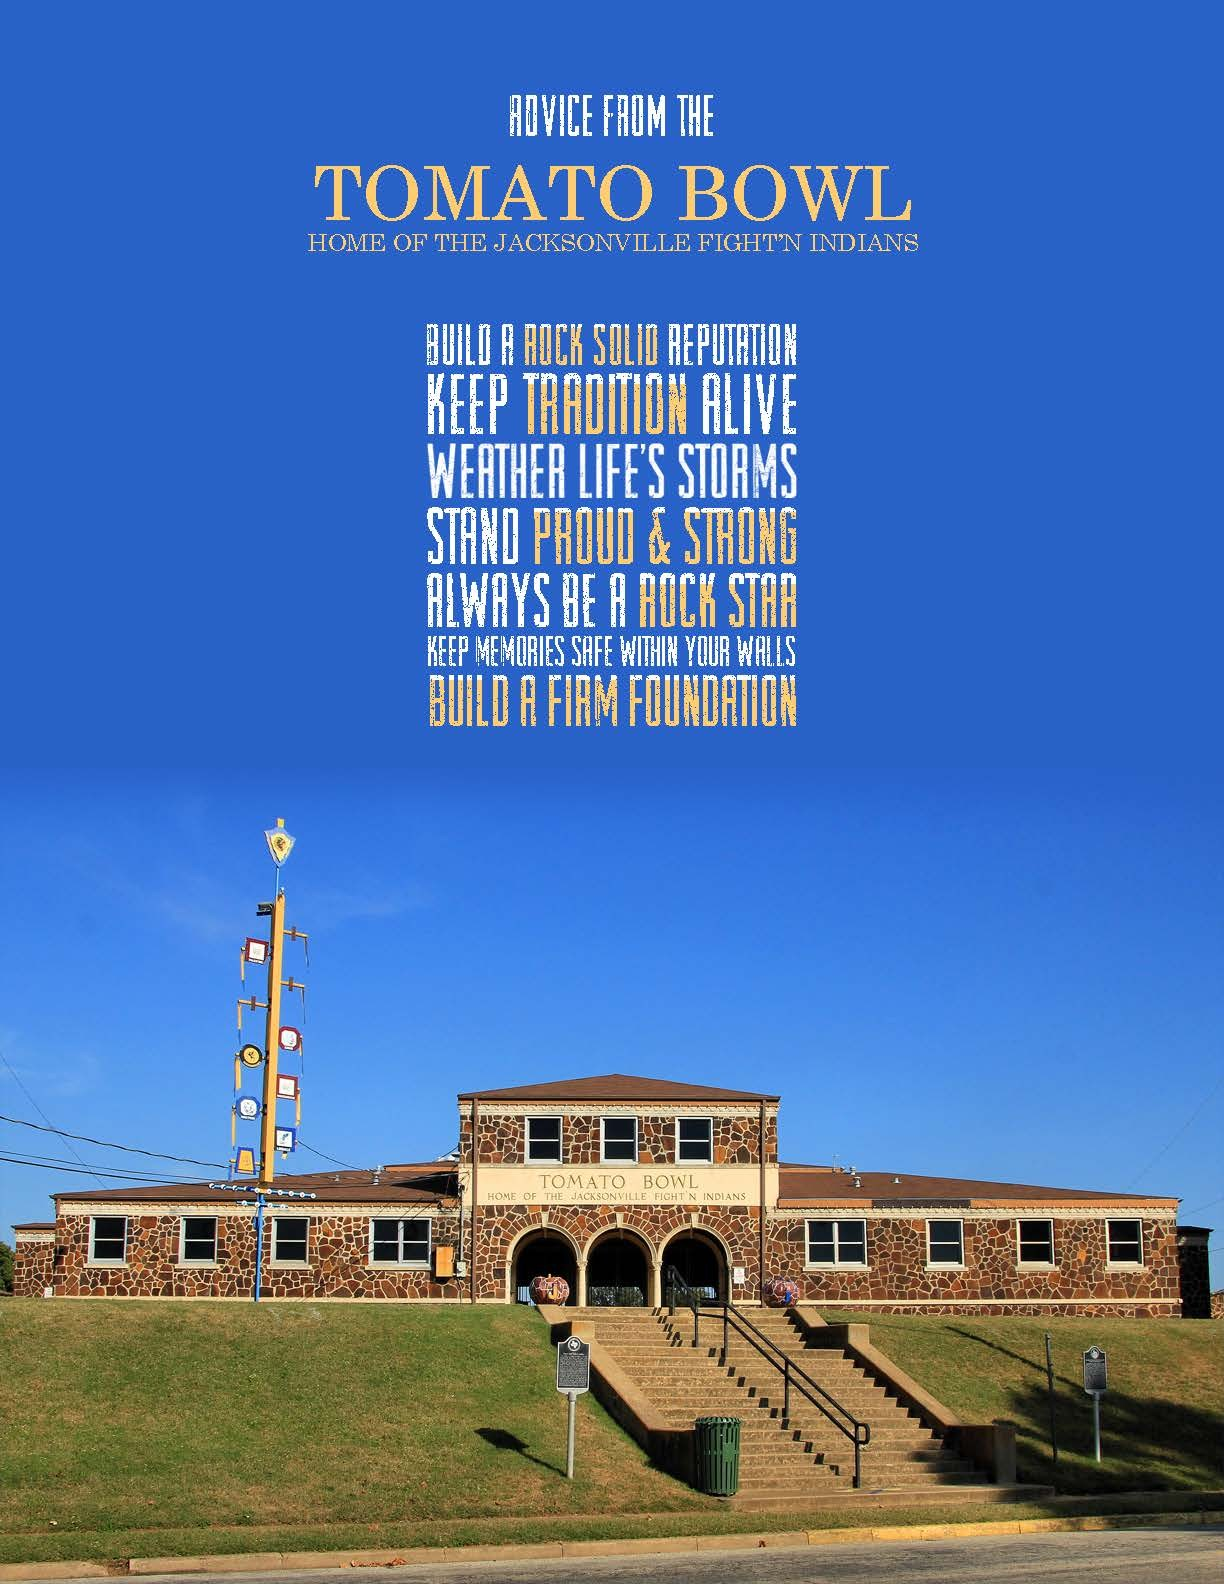 picture of the front of the tomato bowl with advice from the rock walls written on it